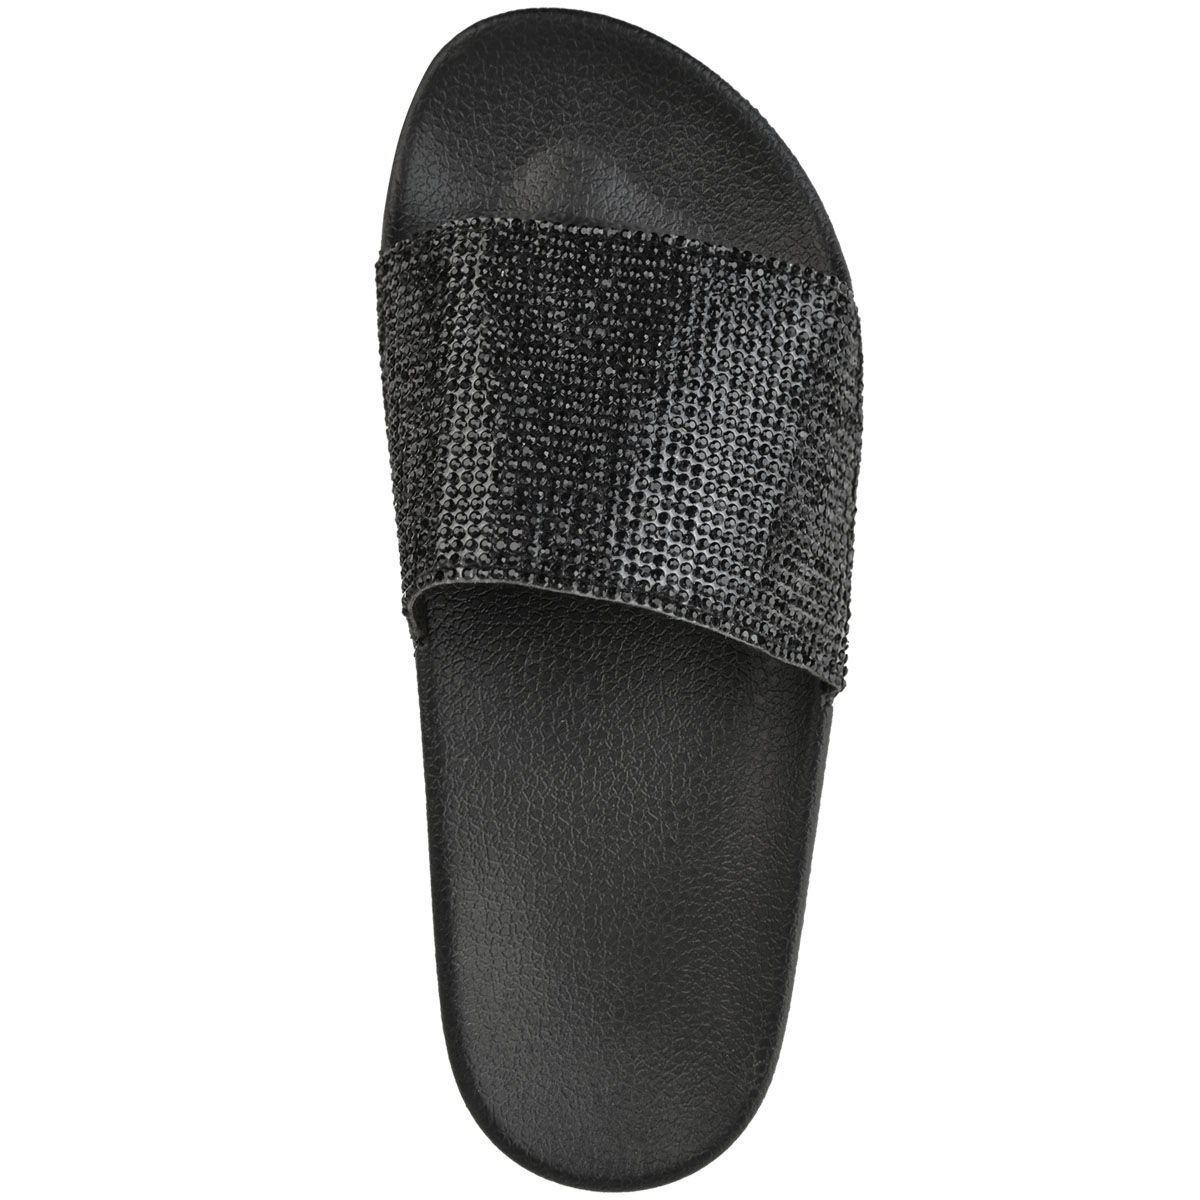 Womens-Ladies-Flat-Slides-Sandals-Diamante-Sparkly-Sliders-Slippers-Shoes-Size thumbnail 6